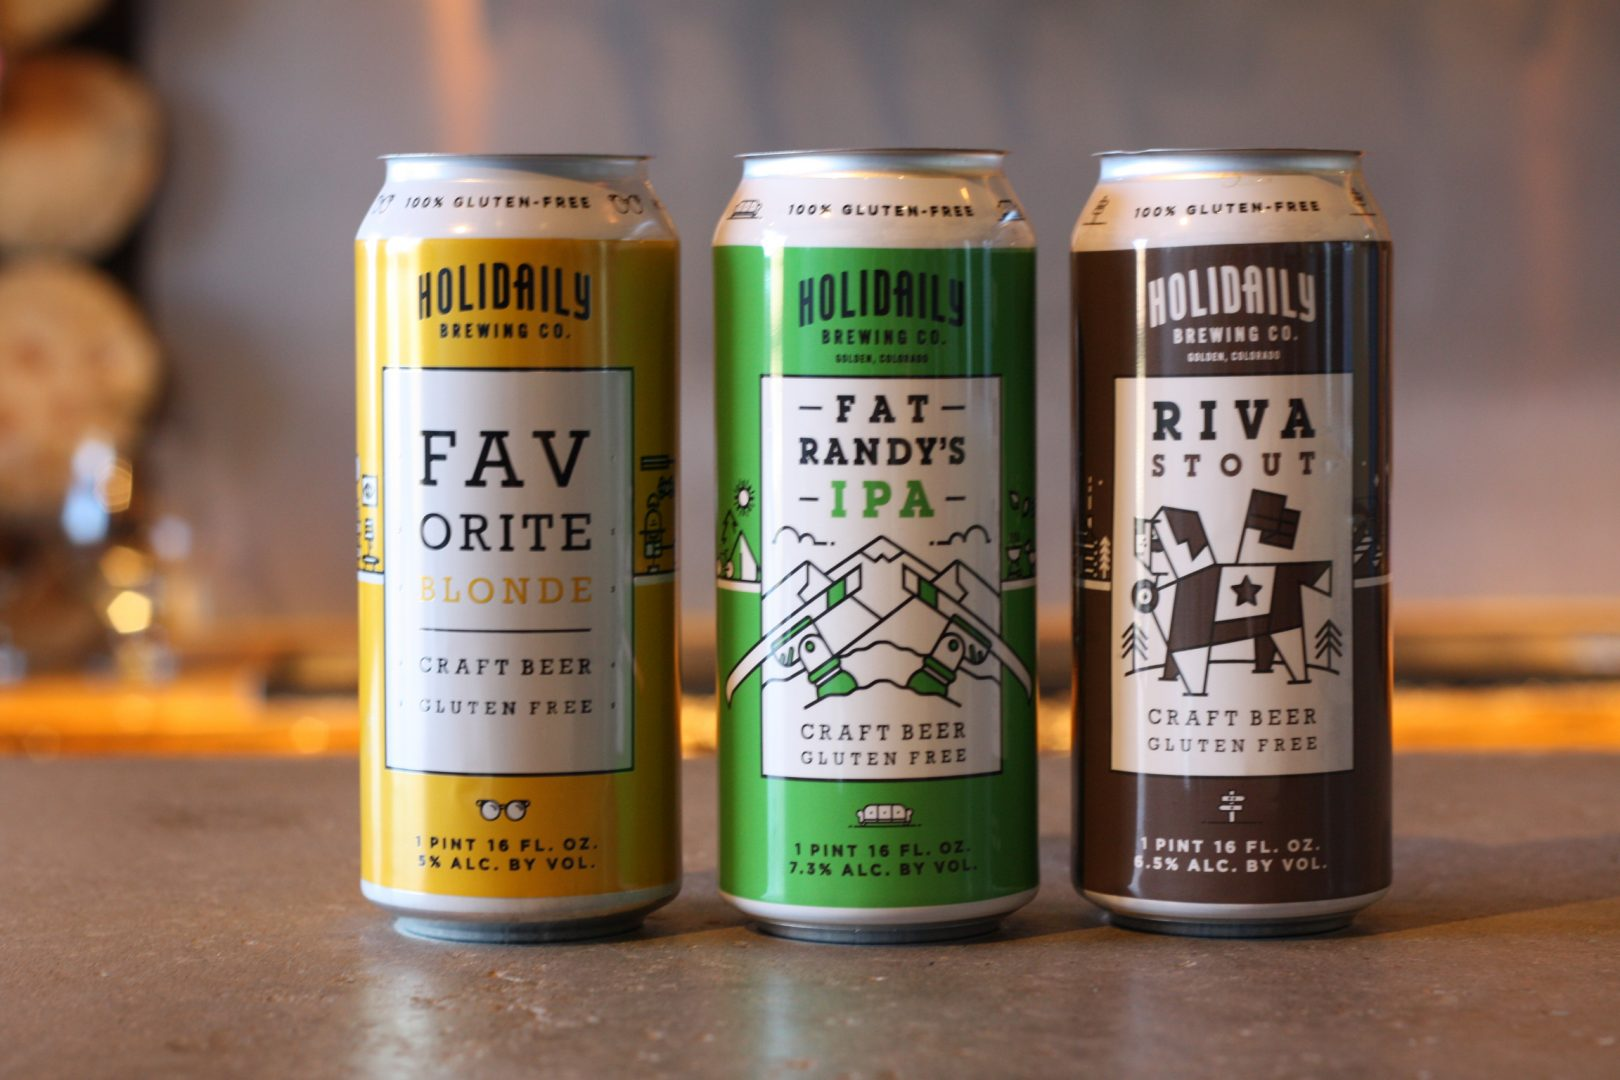 Gluten-free Beer Sampling at Hillside Spot